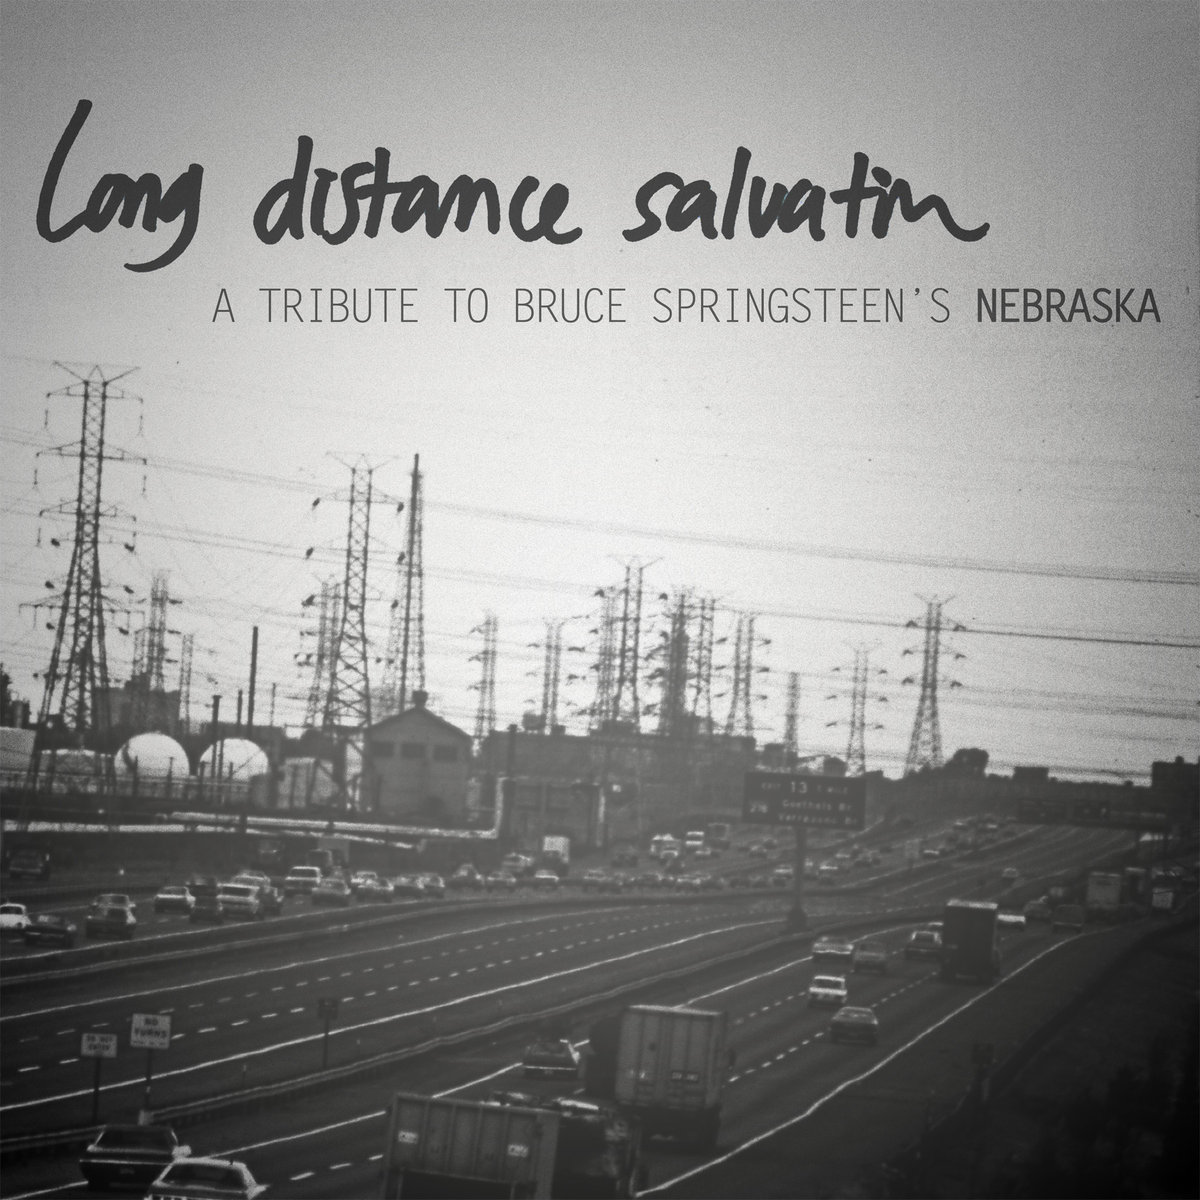 Cover Classics: Long Distance Salvation: A Tribute to Bruce Springsteen's 'Nebraska'